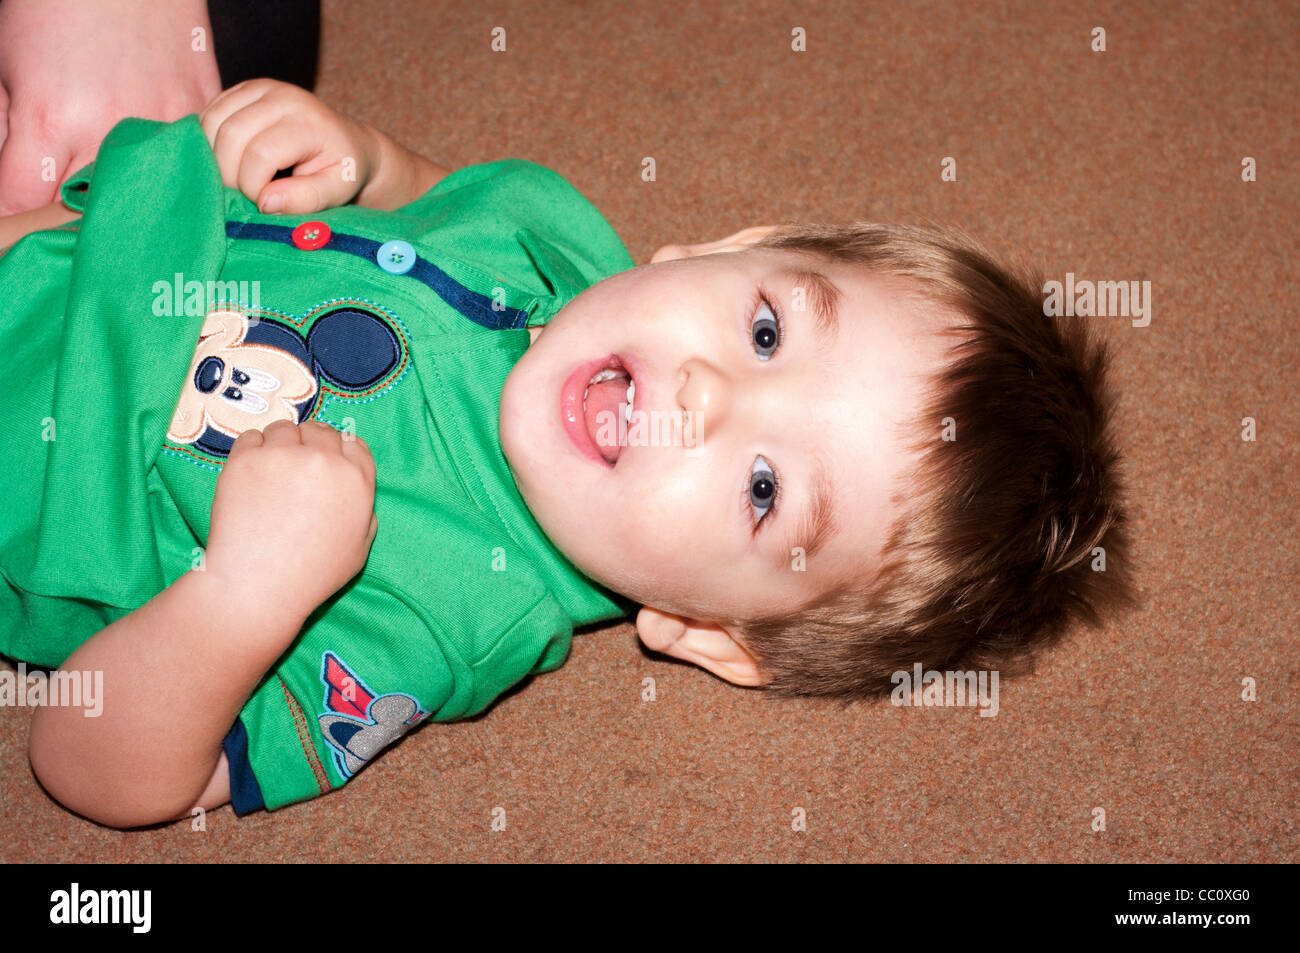 2 Year Old Young Child Boy Infant Toddler Laying On The Floor Looking At THe Camera With His Mouth Open - Stock Image